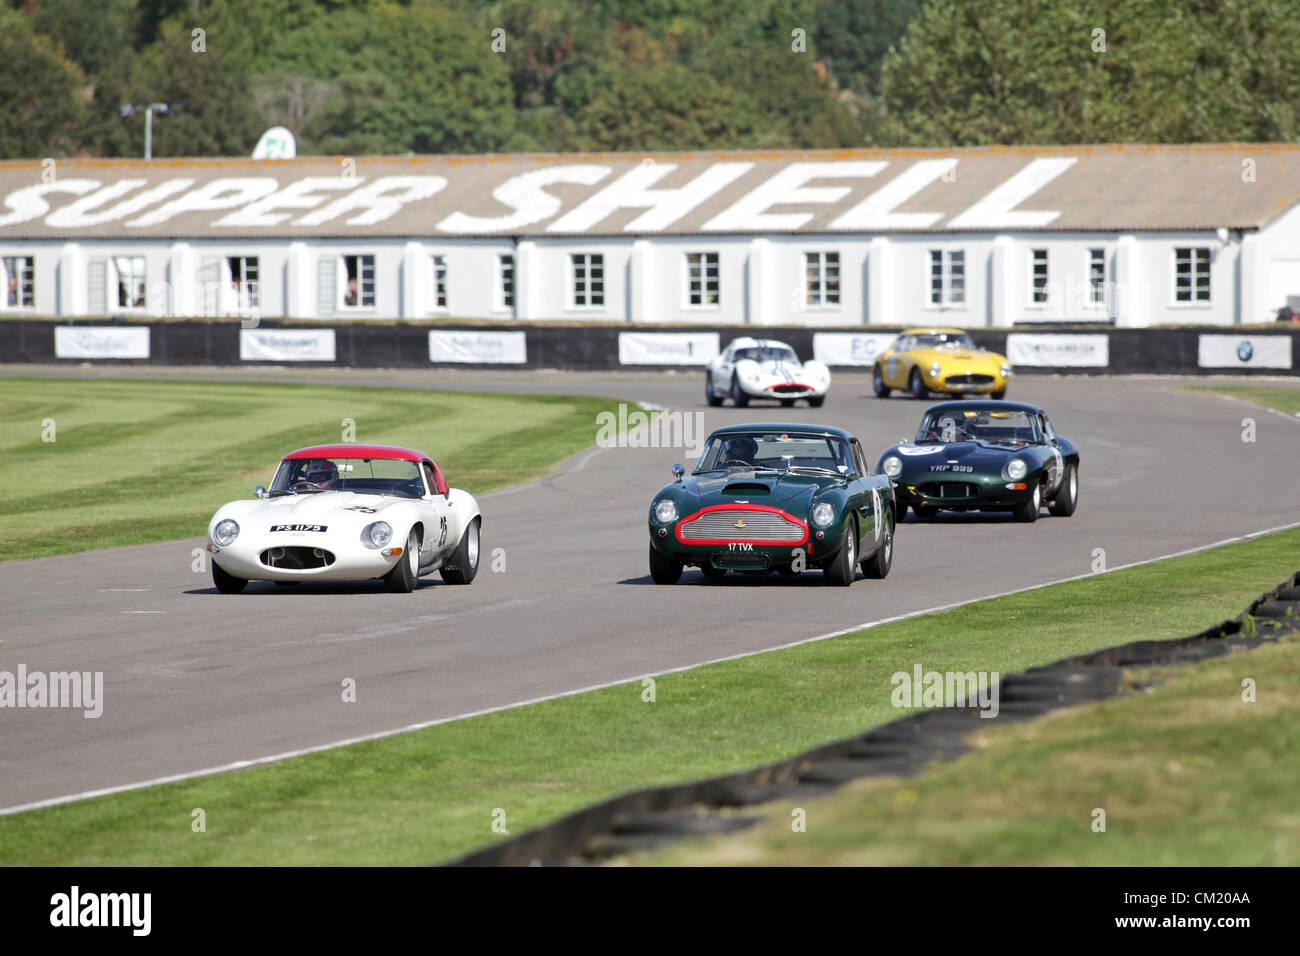 Goodwood Estate, Chichester, UK. 15th September 2012. Martin Brundle driving a white 1963 Jaguar E-type during the - Stock Image